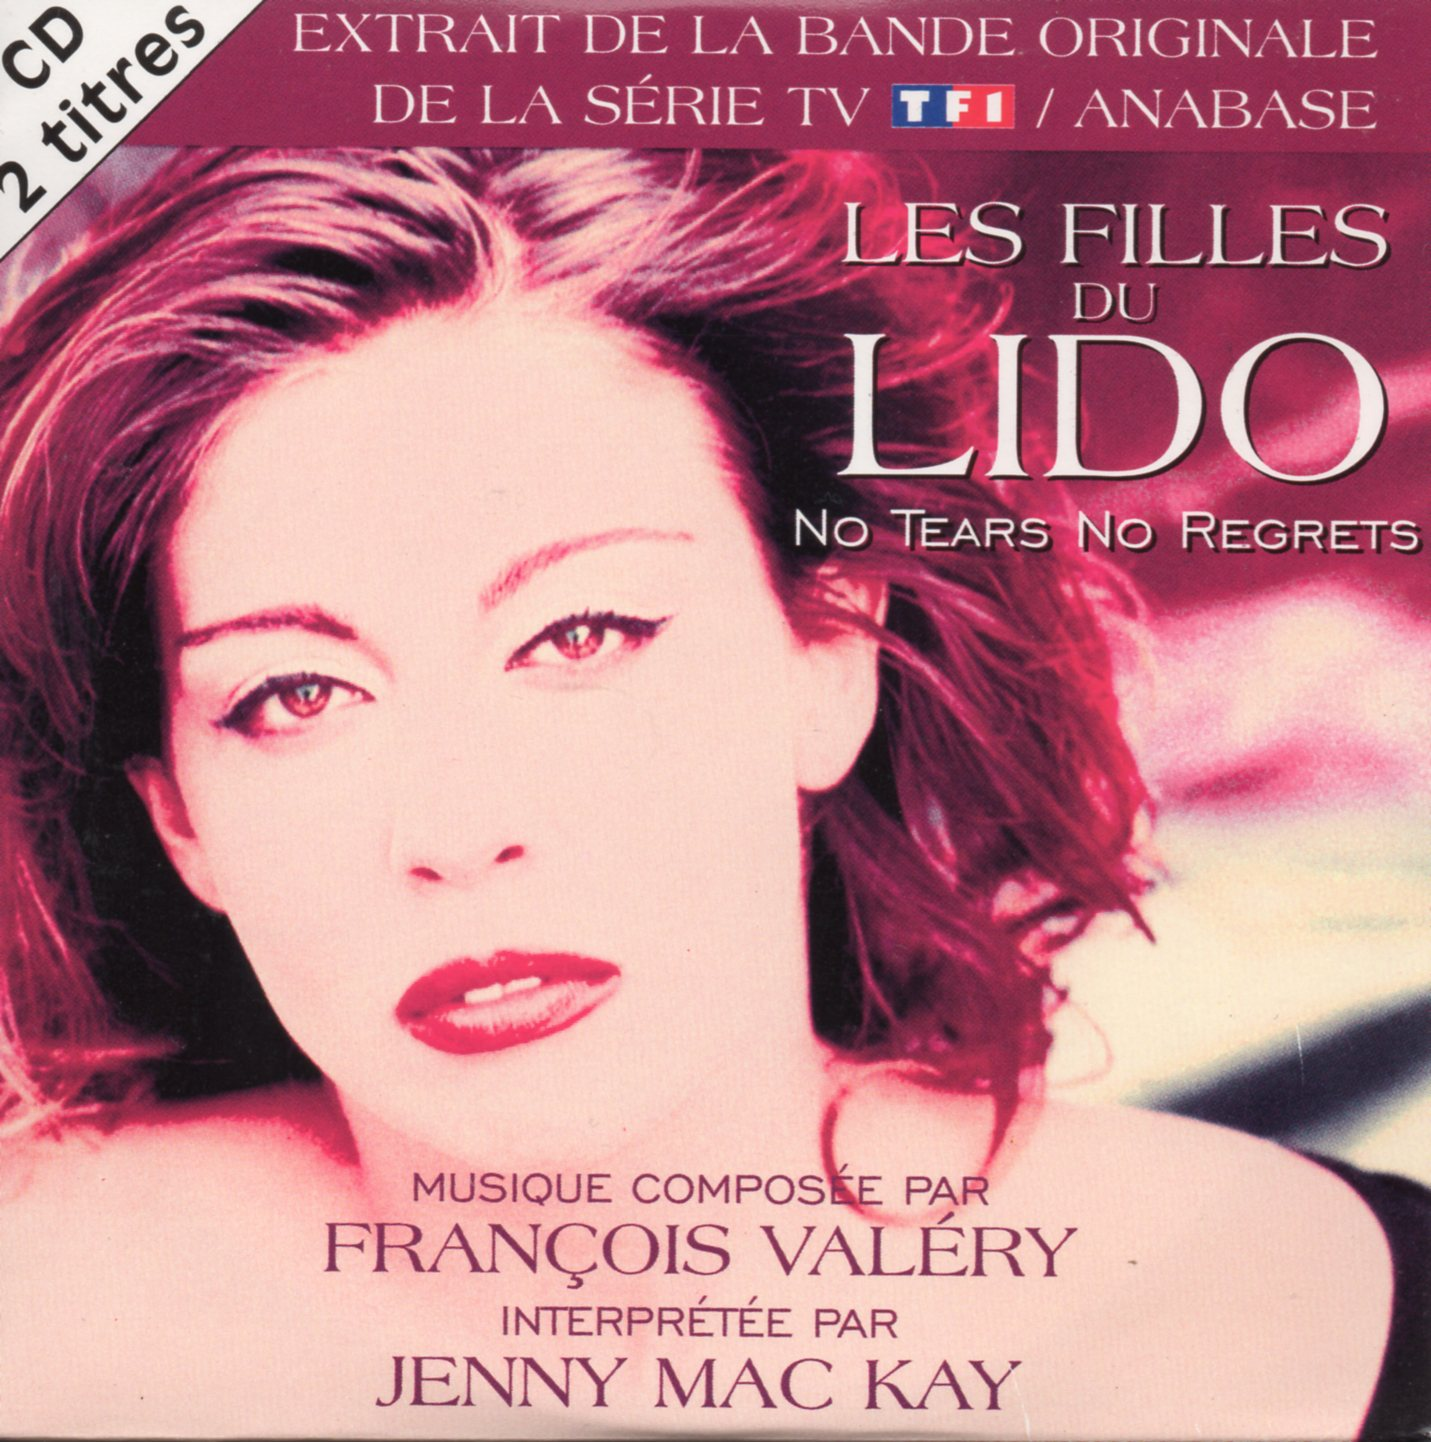 FRANCOIS VALERY - JENNY MAC KAY - SOUNDTRACK : LES - No Tears No Regrets  2-track CARD SLEEVE - CD single